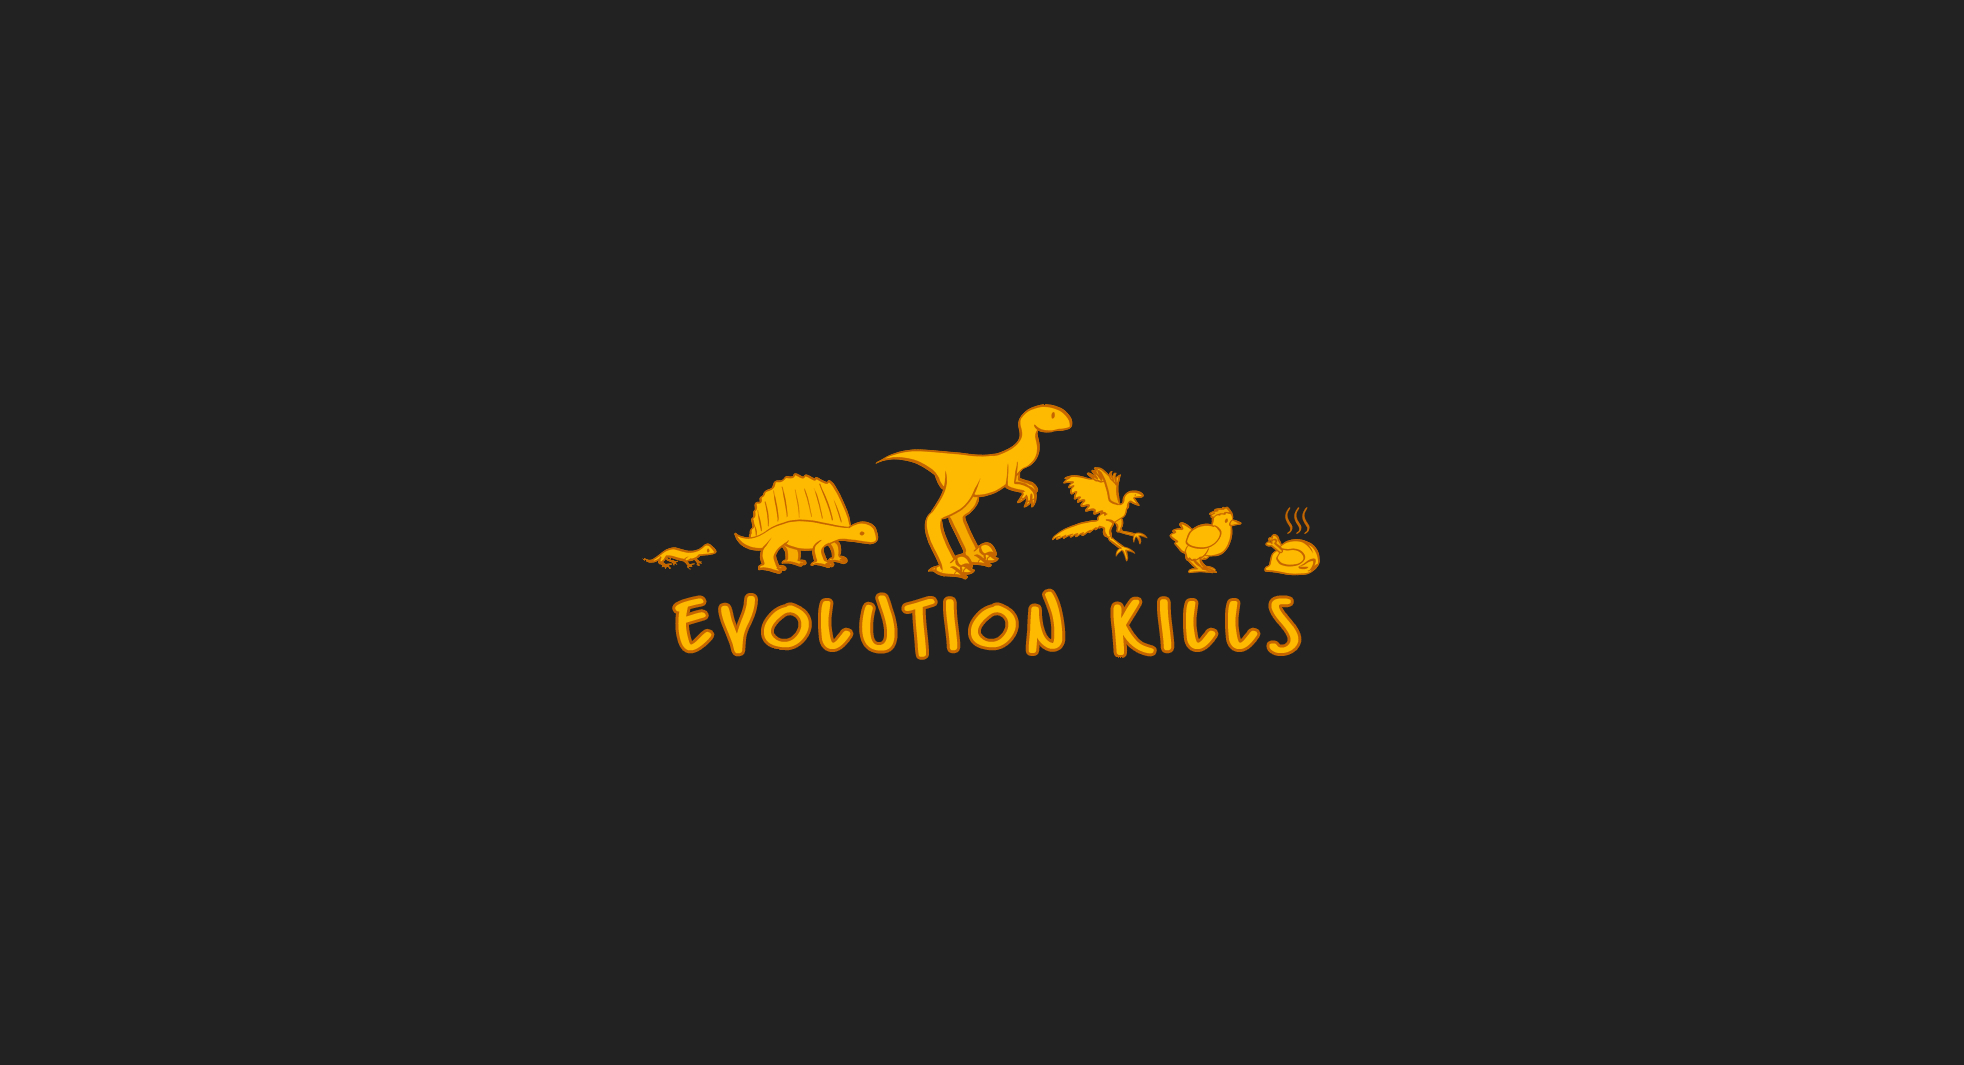 death Animals signs Evolution HD Wallpaper